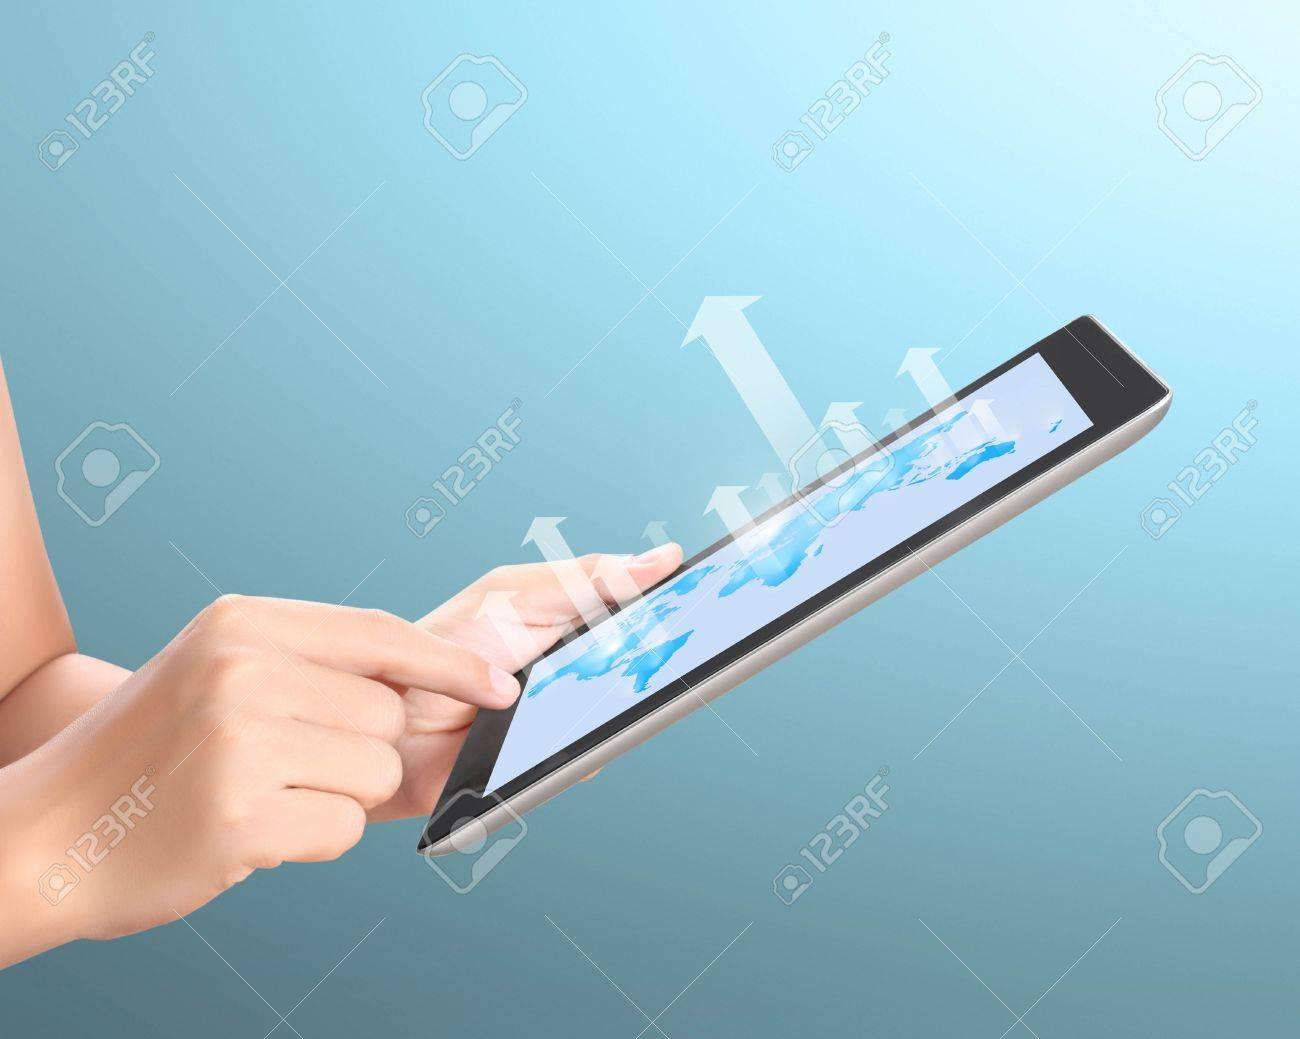 Holding Touch Screen Tablet And Shows Tablet In Hand With Graph